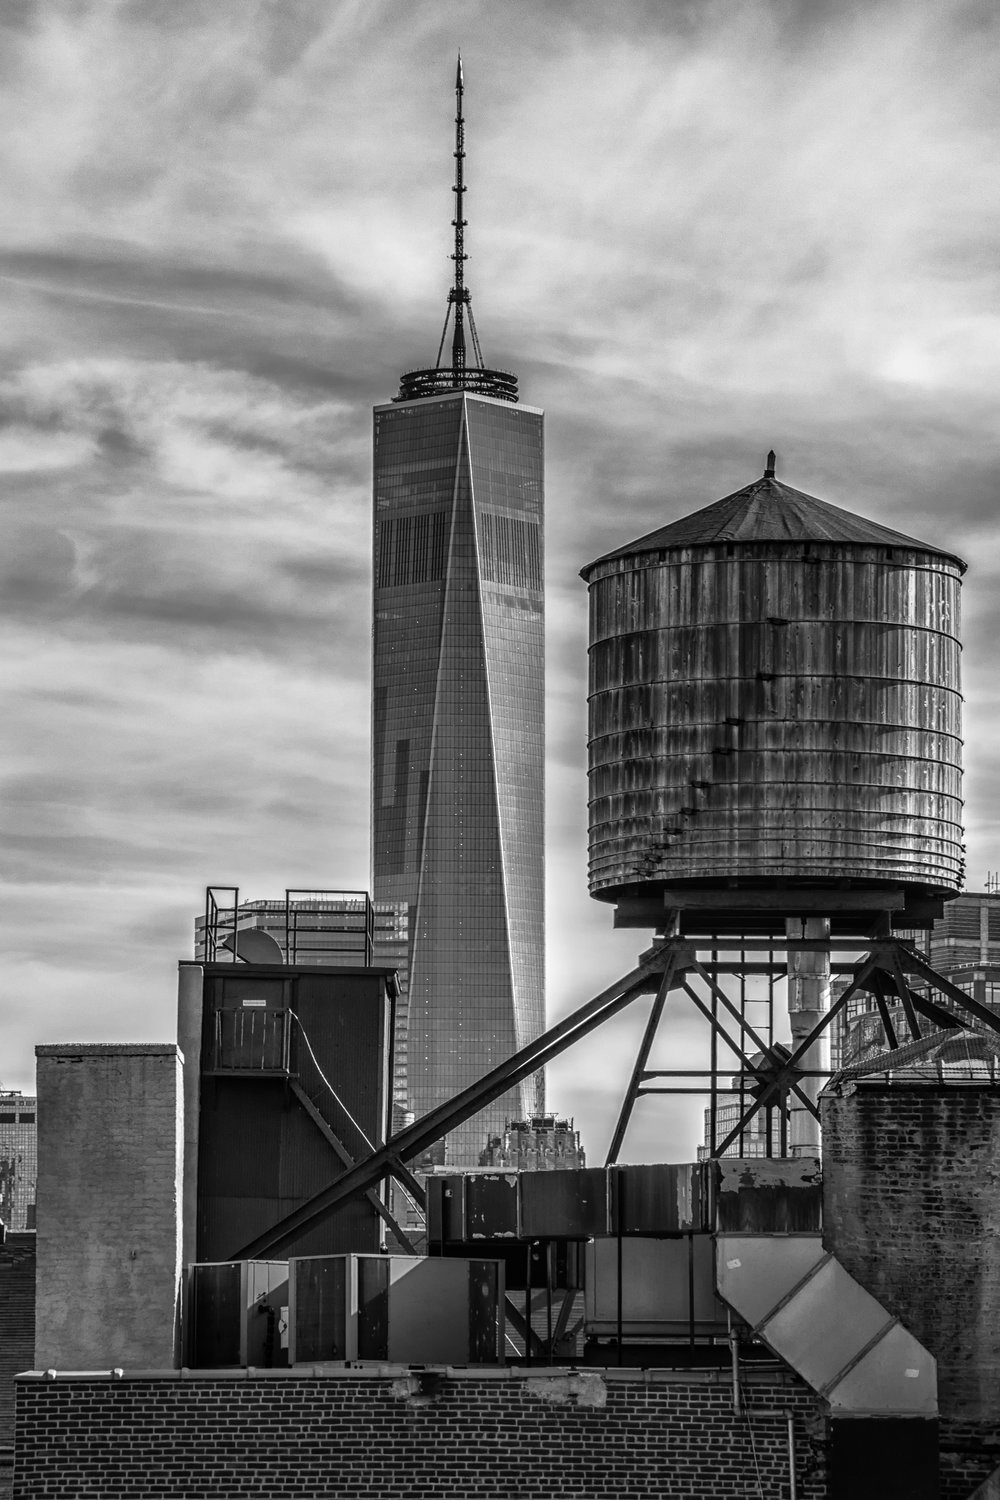 Two Towers - Nikon D7100, 1/320 @ f/11, ISO200, 85mm. Shot from a rooftop in Greenwich Village, the juxtaposition of the old water tower with One World Trade Center was striking to say the least. Iconic New York!